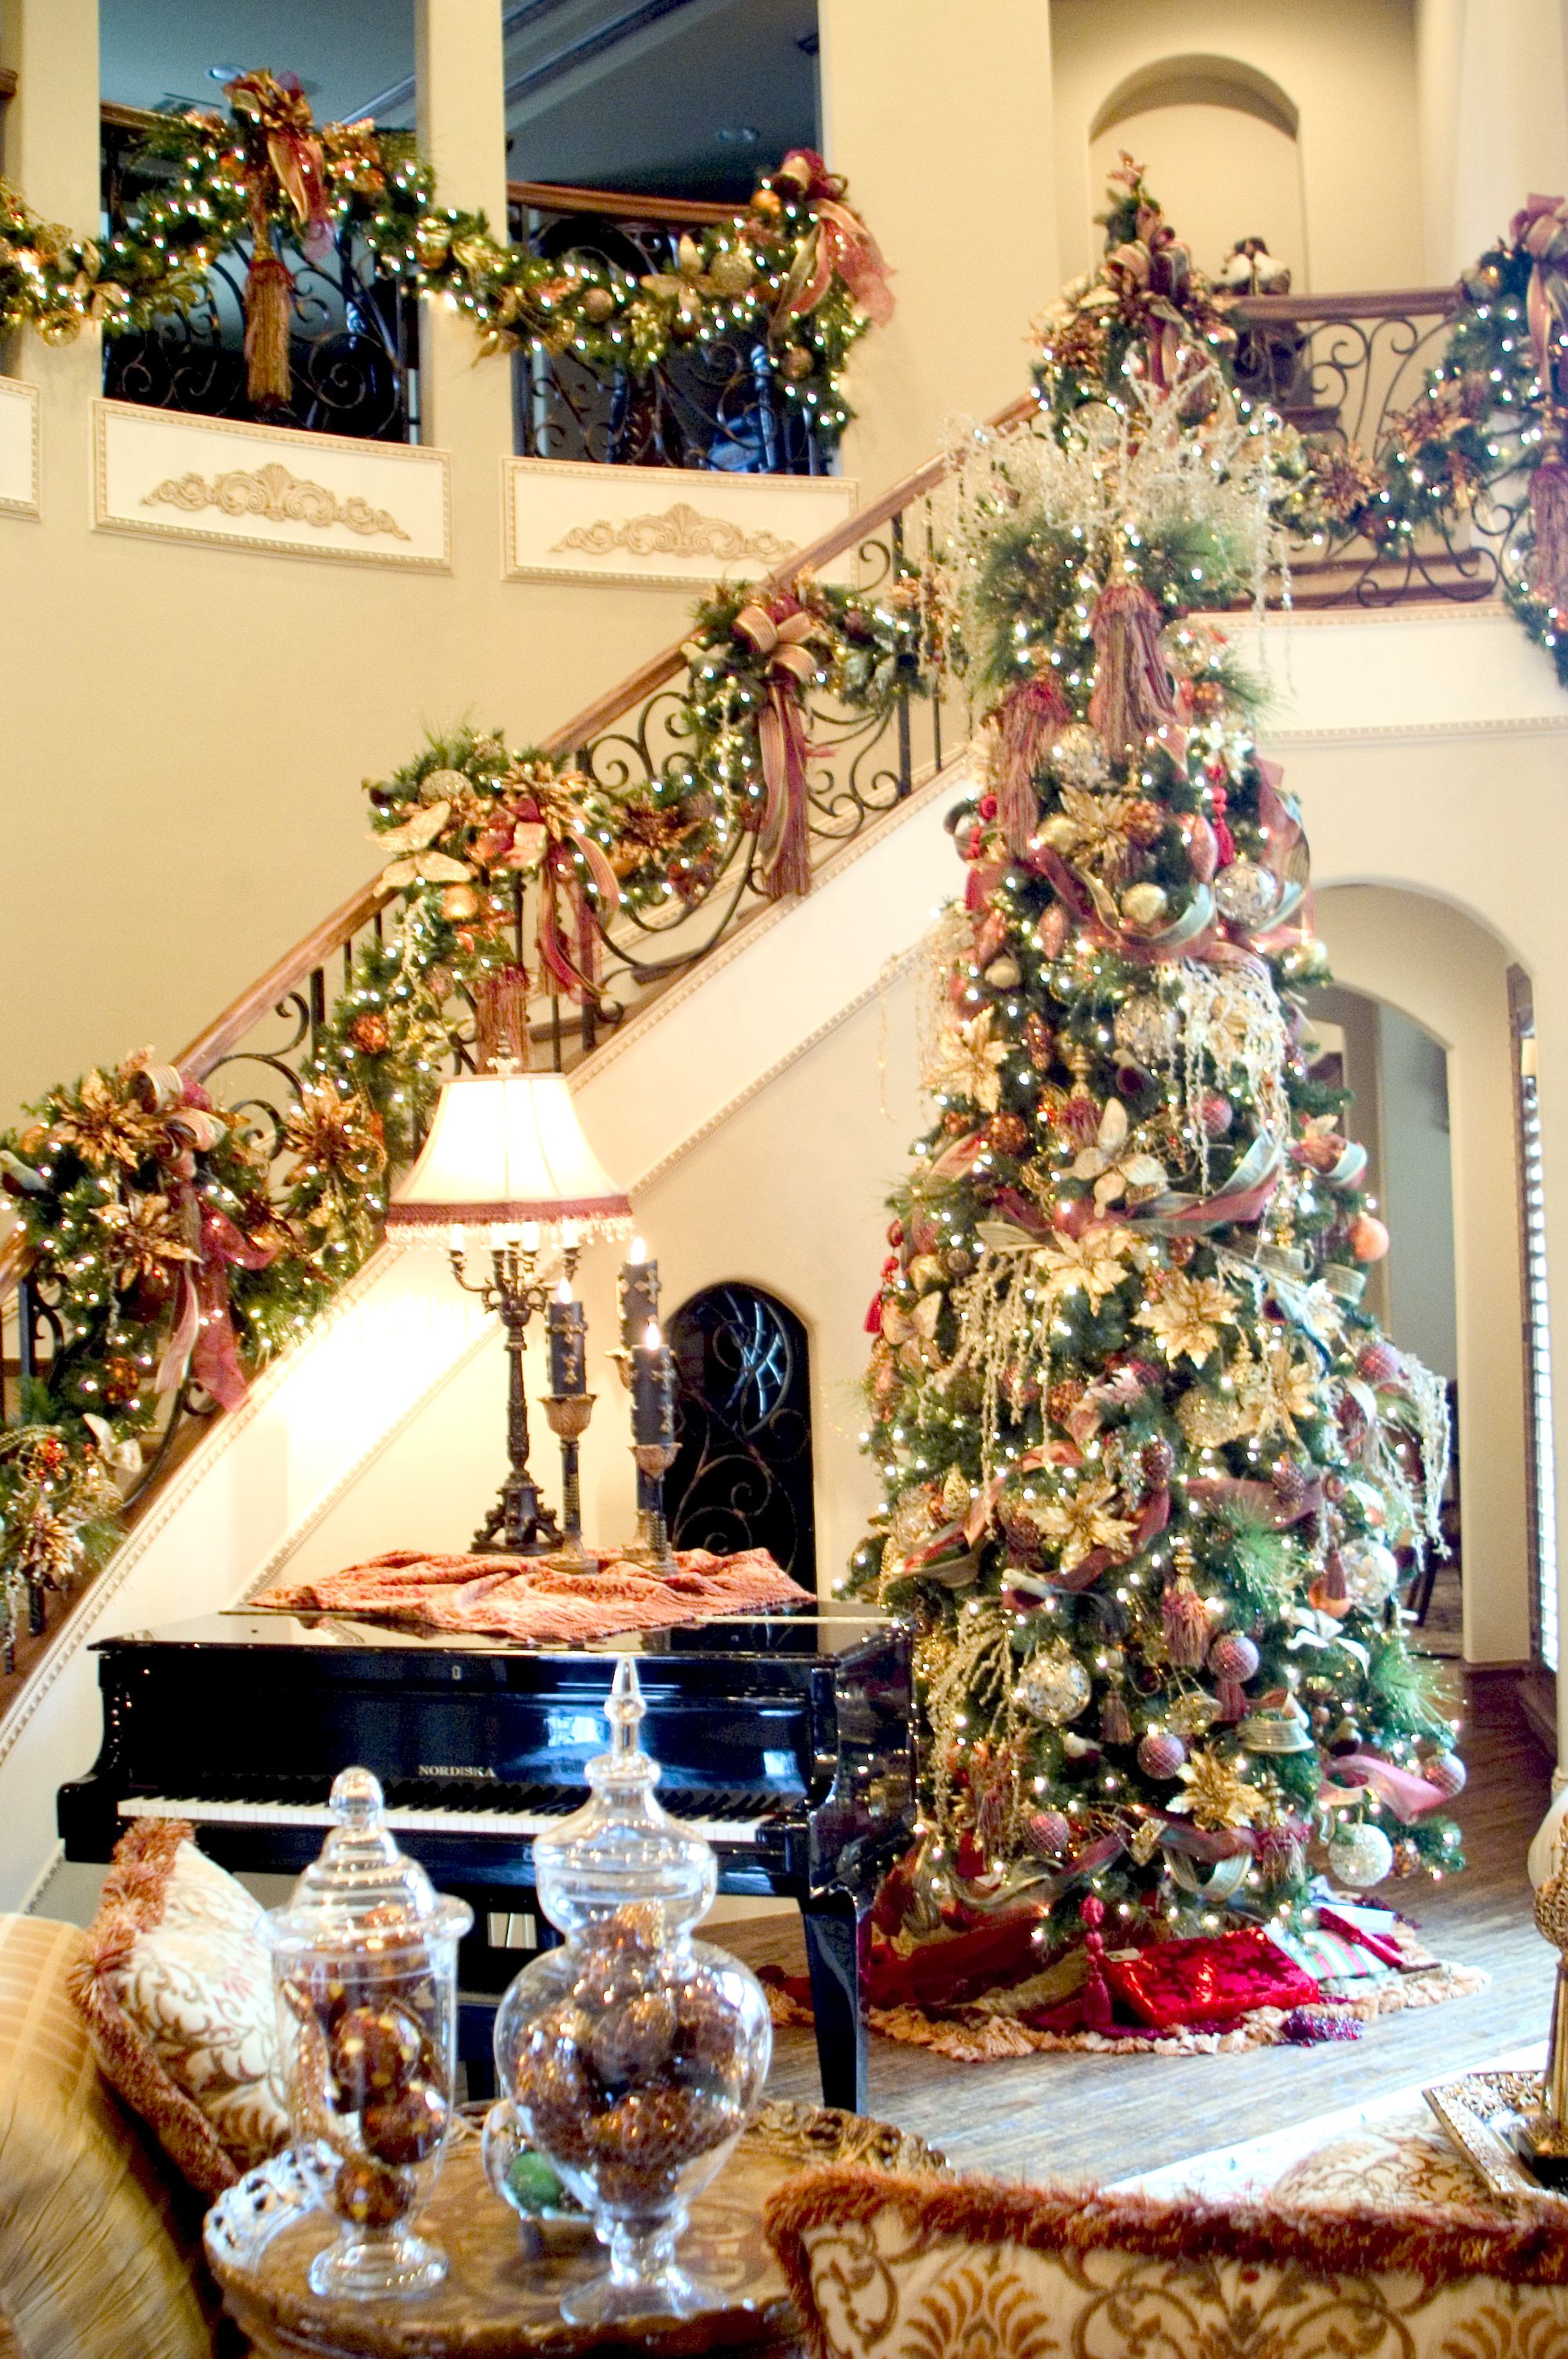 interior design dallas tx - 1000+ images about mas ree on Pinterest mas trees, Decorating ...